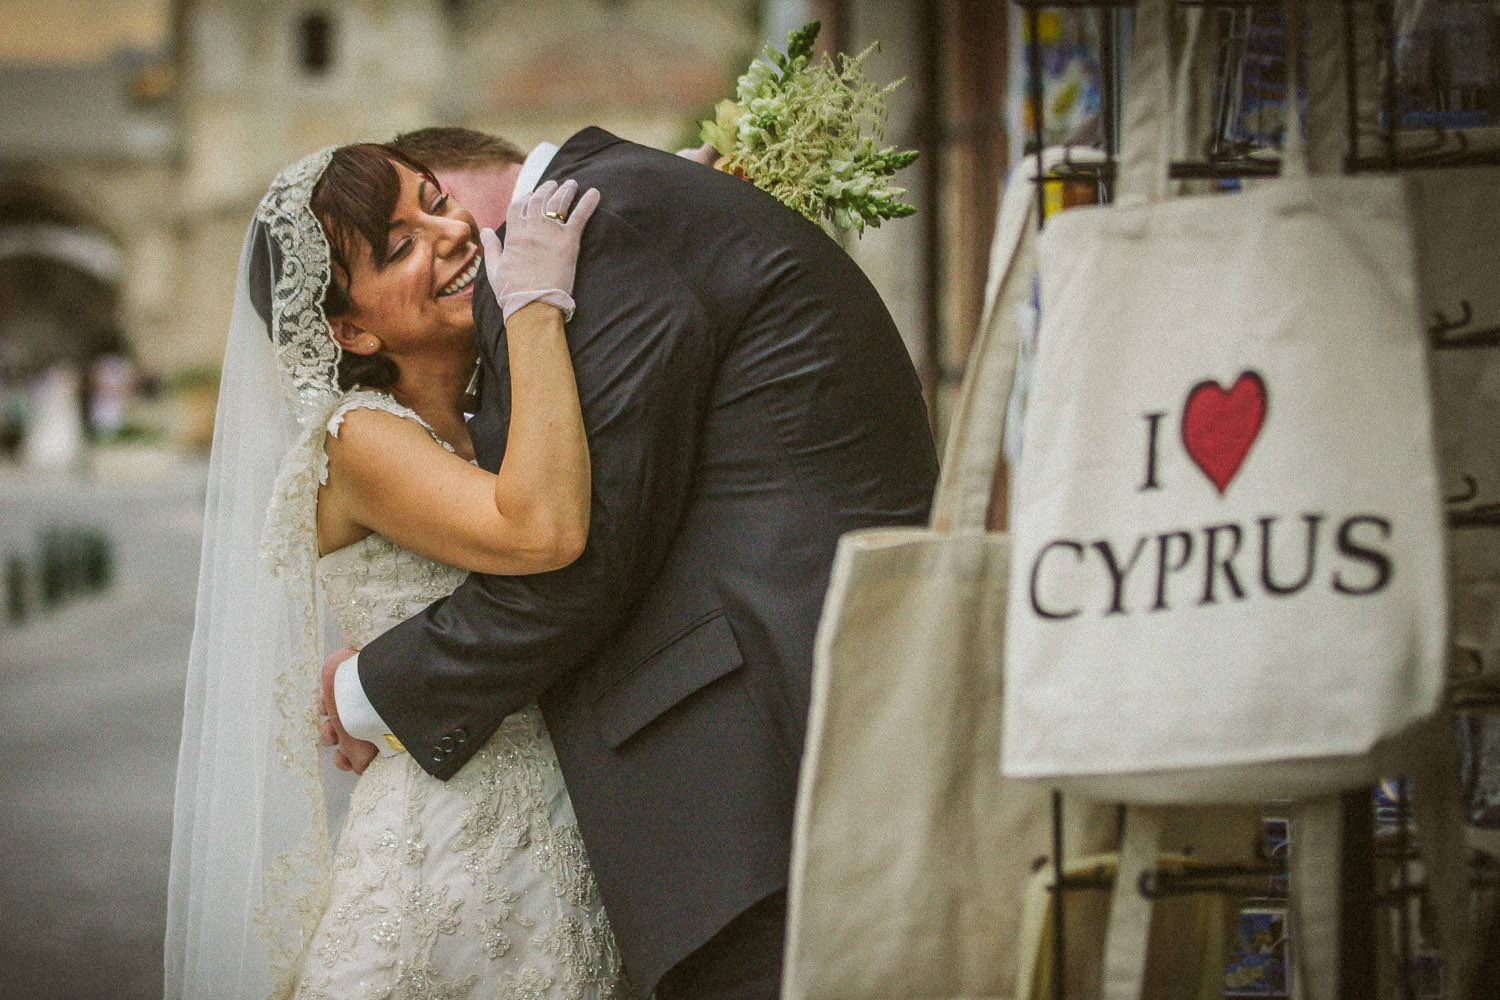 I love Cyprus wedding photo